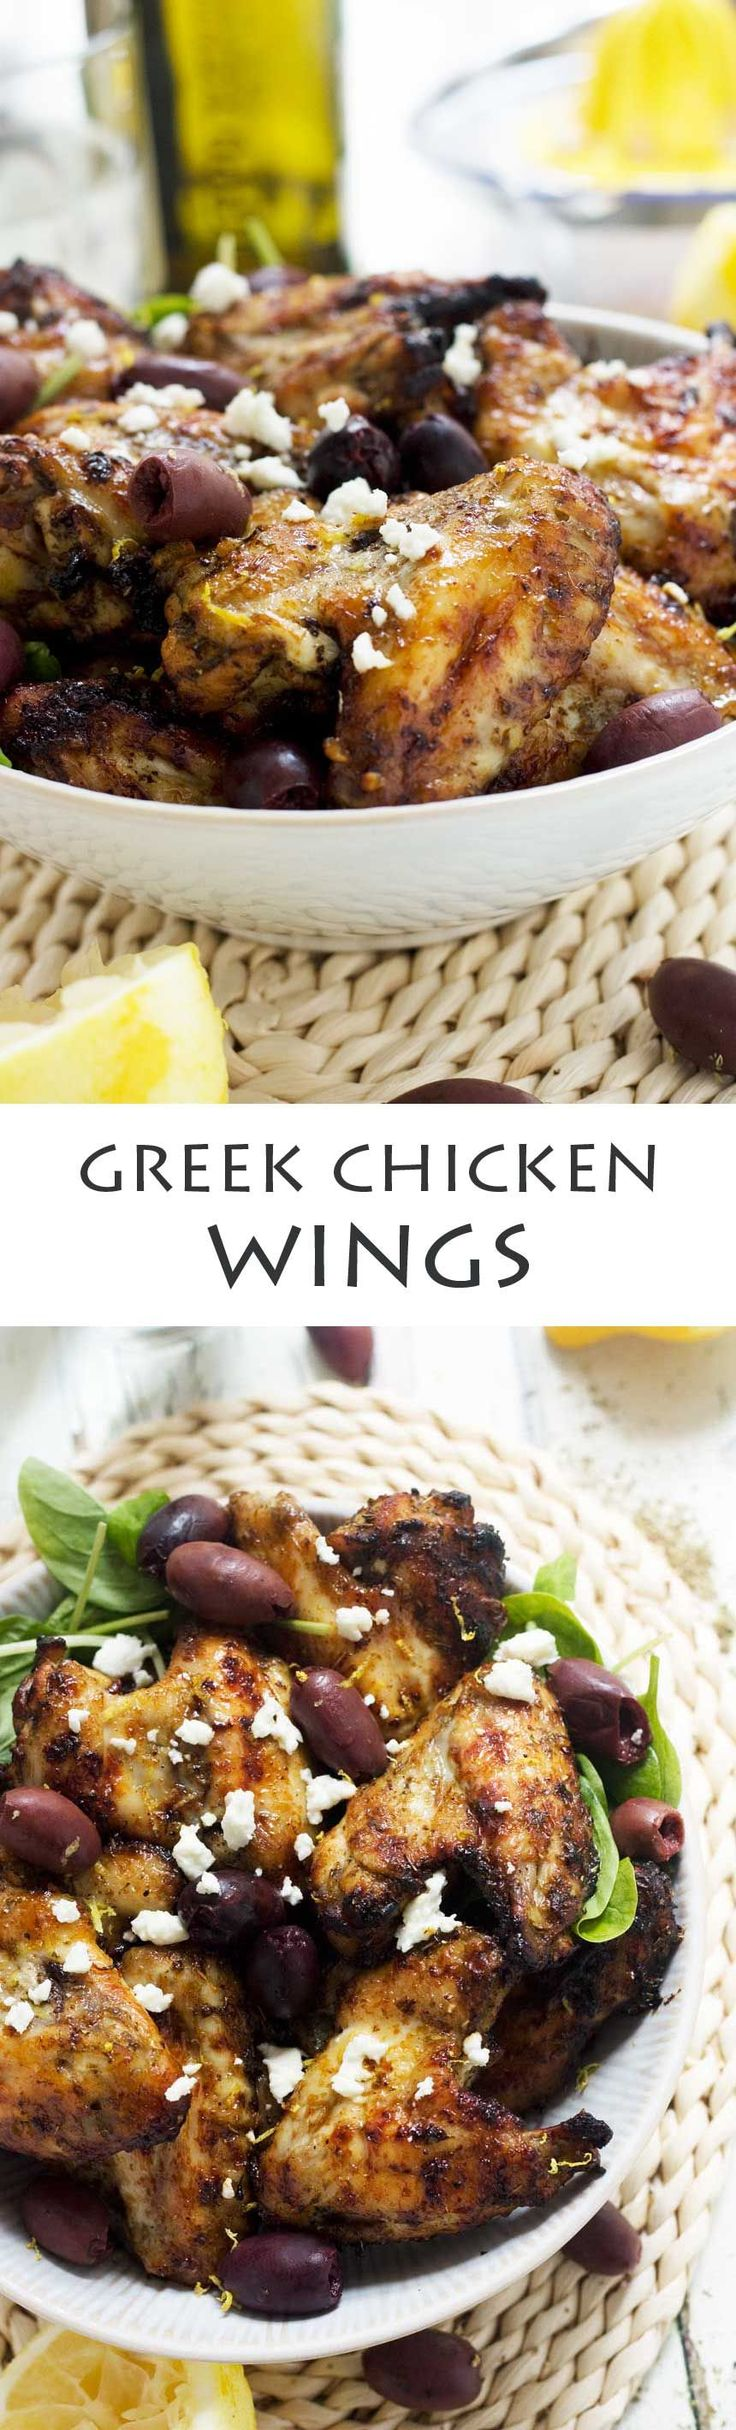 Greek baked chicken wings by Recipe Tin Eats. Perfect Superbowl food!!! Come and see our new website at bakedcomfortfood.com!